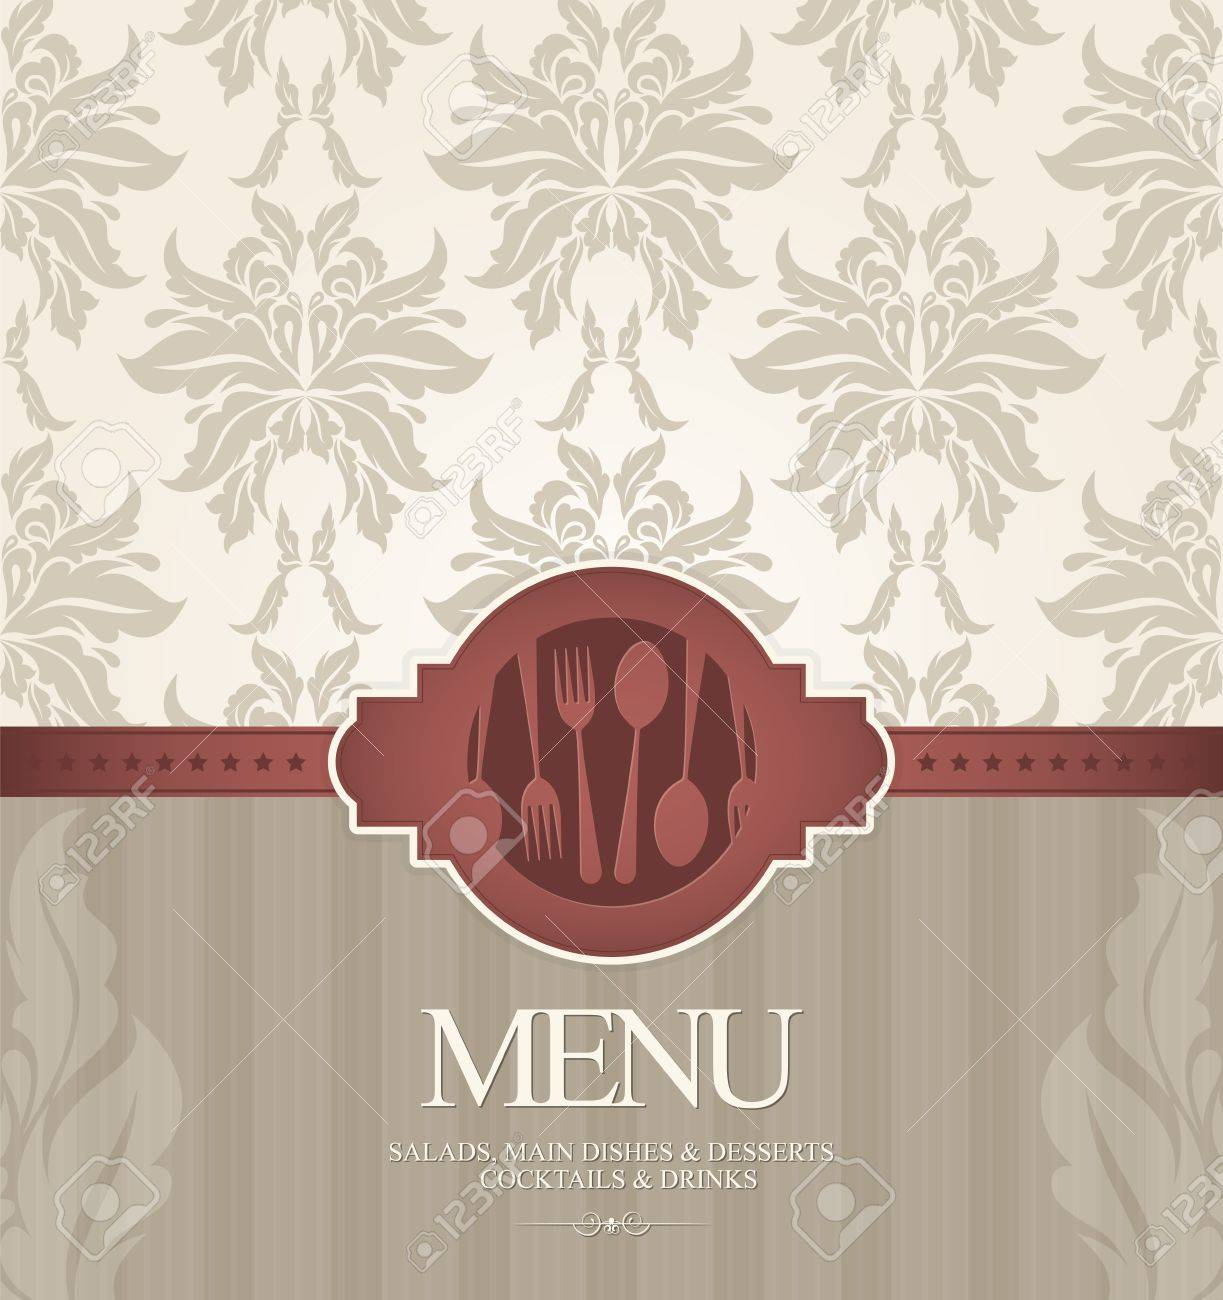 restaurant menu design, with seamless background royalty free